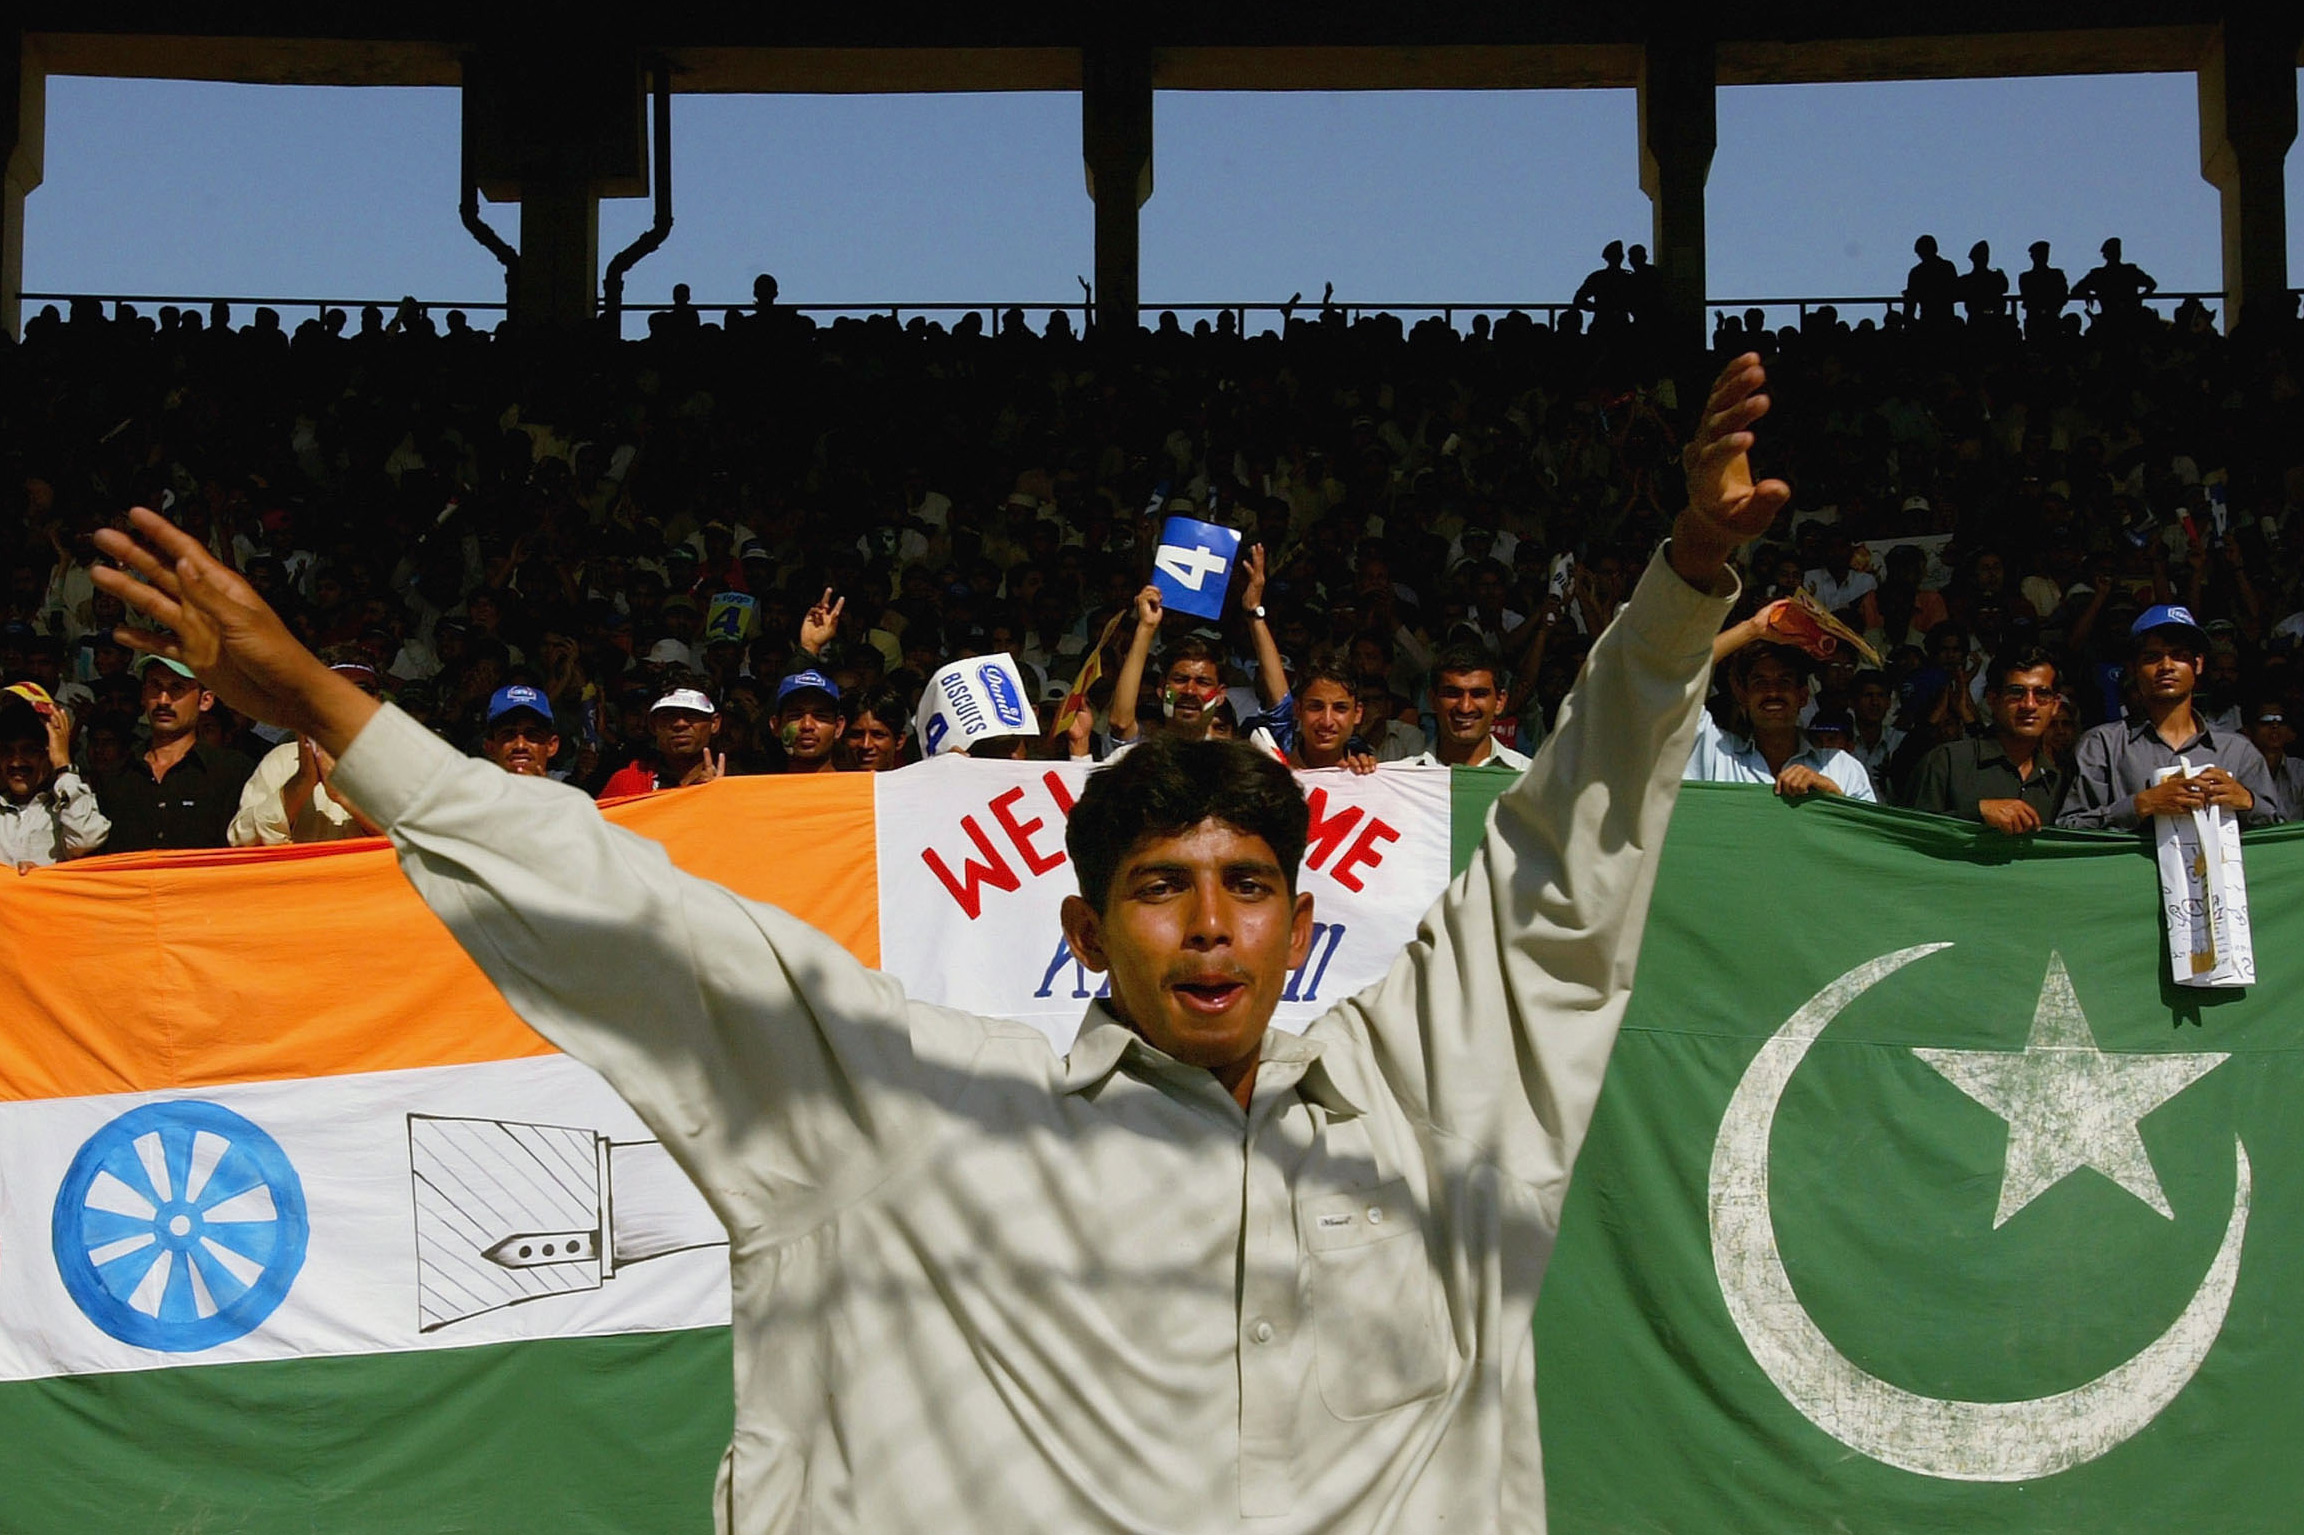 13 March 2004: Cricket fans celebrate India's first one-day international against Pakistan at the National Stadium in Karachi, Pakistan. (Photograph by Scott Barbour/ Getty Images)